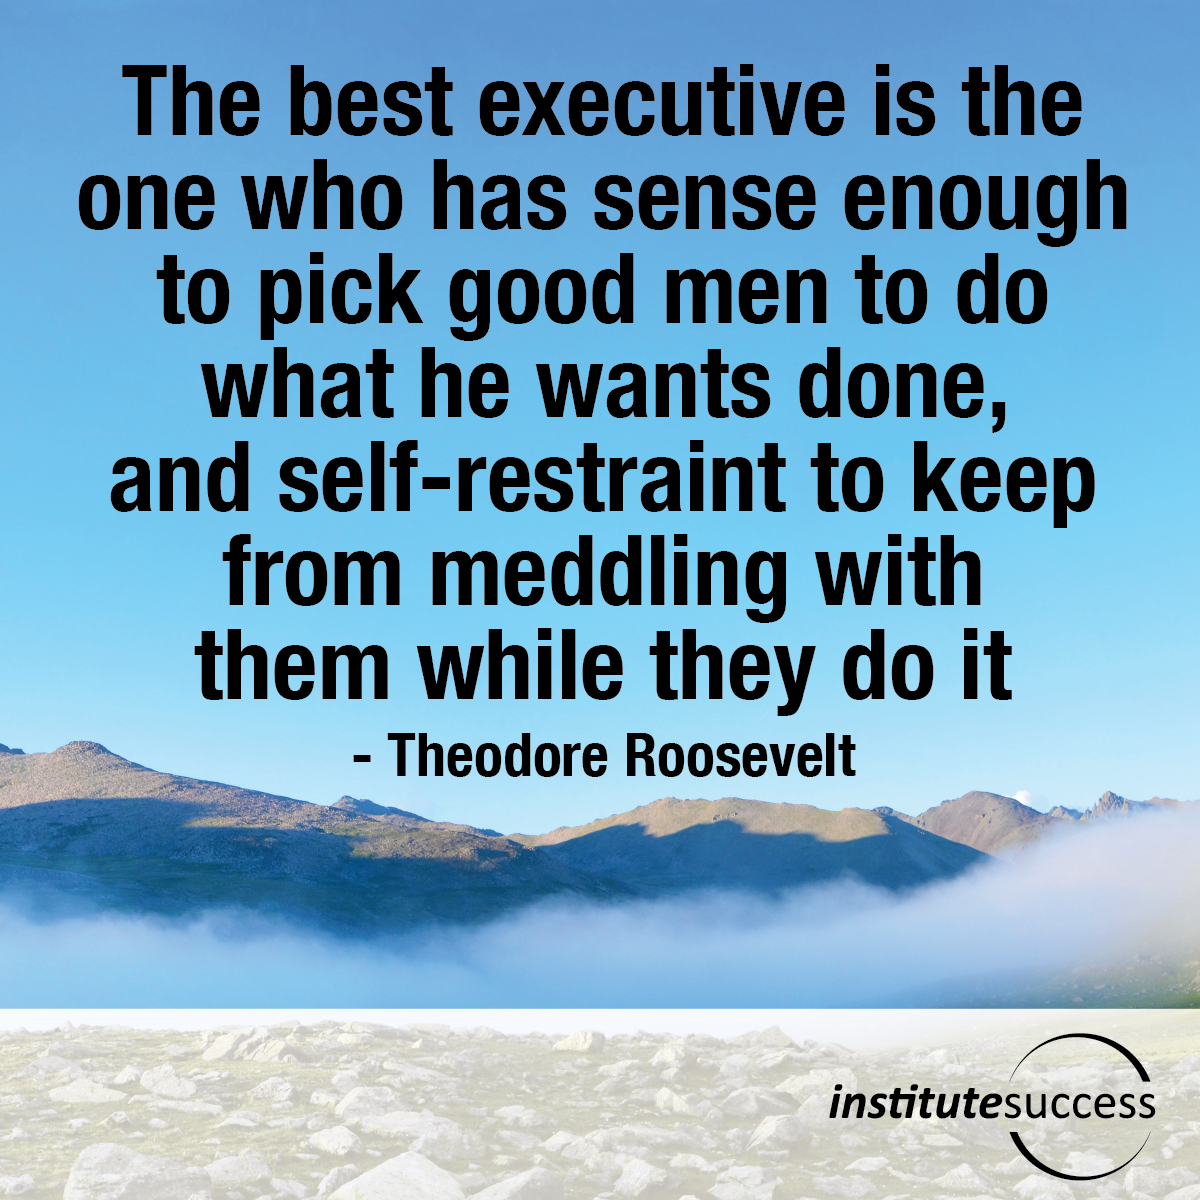 The best executive is the one who has sense enough to pick good men to do what he wants done, and self-restraint to keep from meddling with them while they do it – Theodore Roosevelt